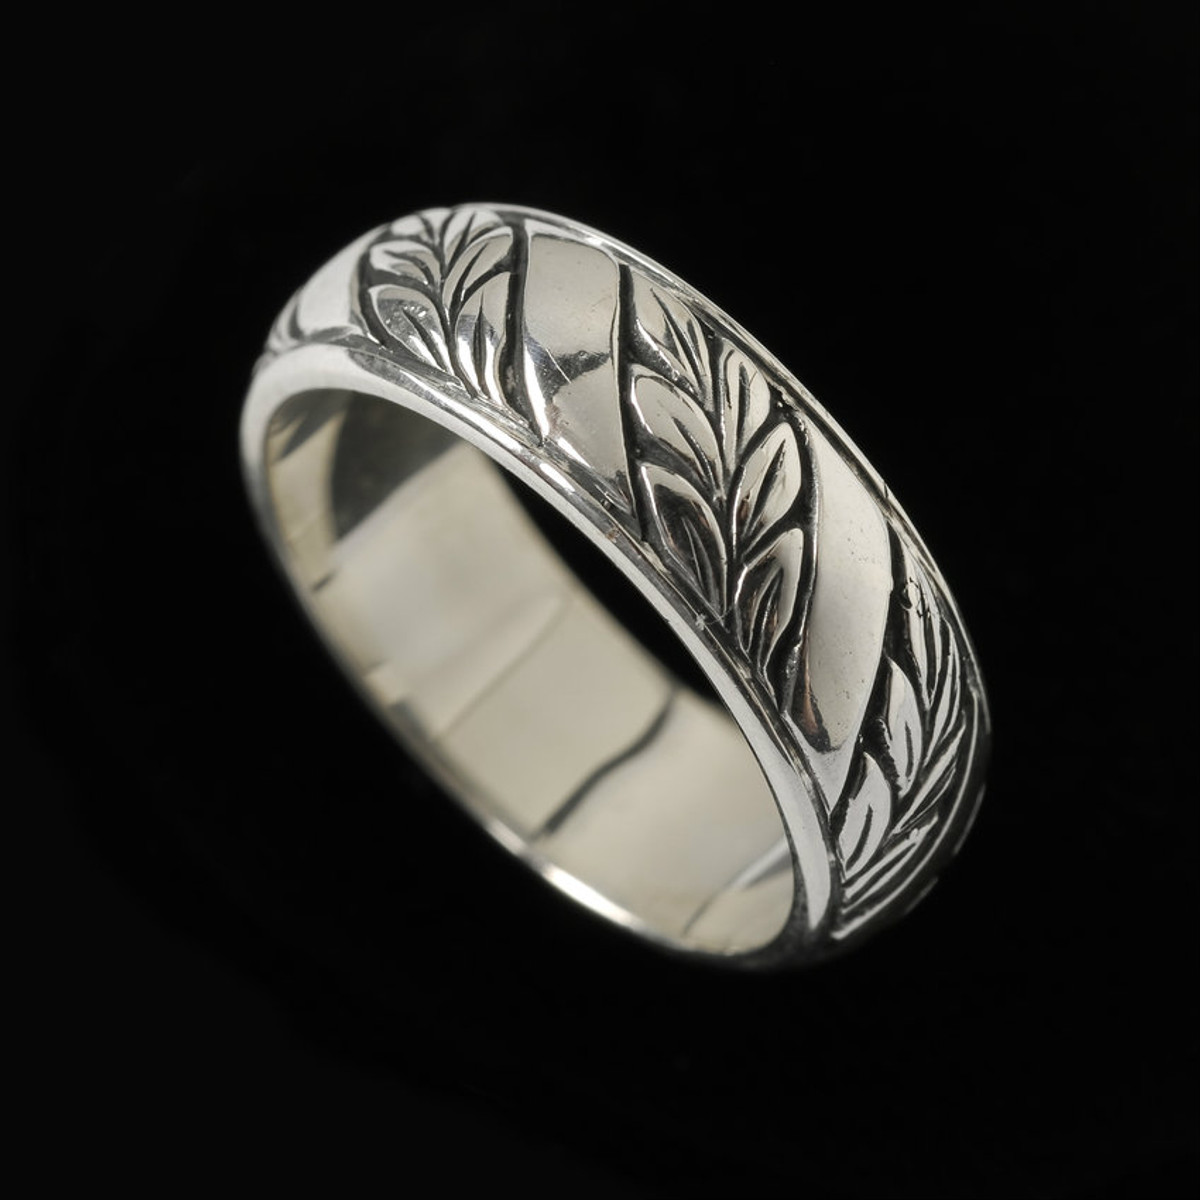 handmade and engraved laurel leaf wedding ring band by bowman originals sarasota - Leaf Wedding Ring